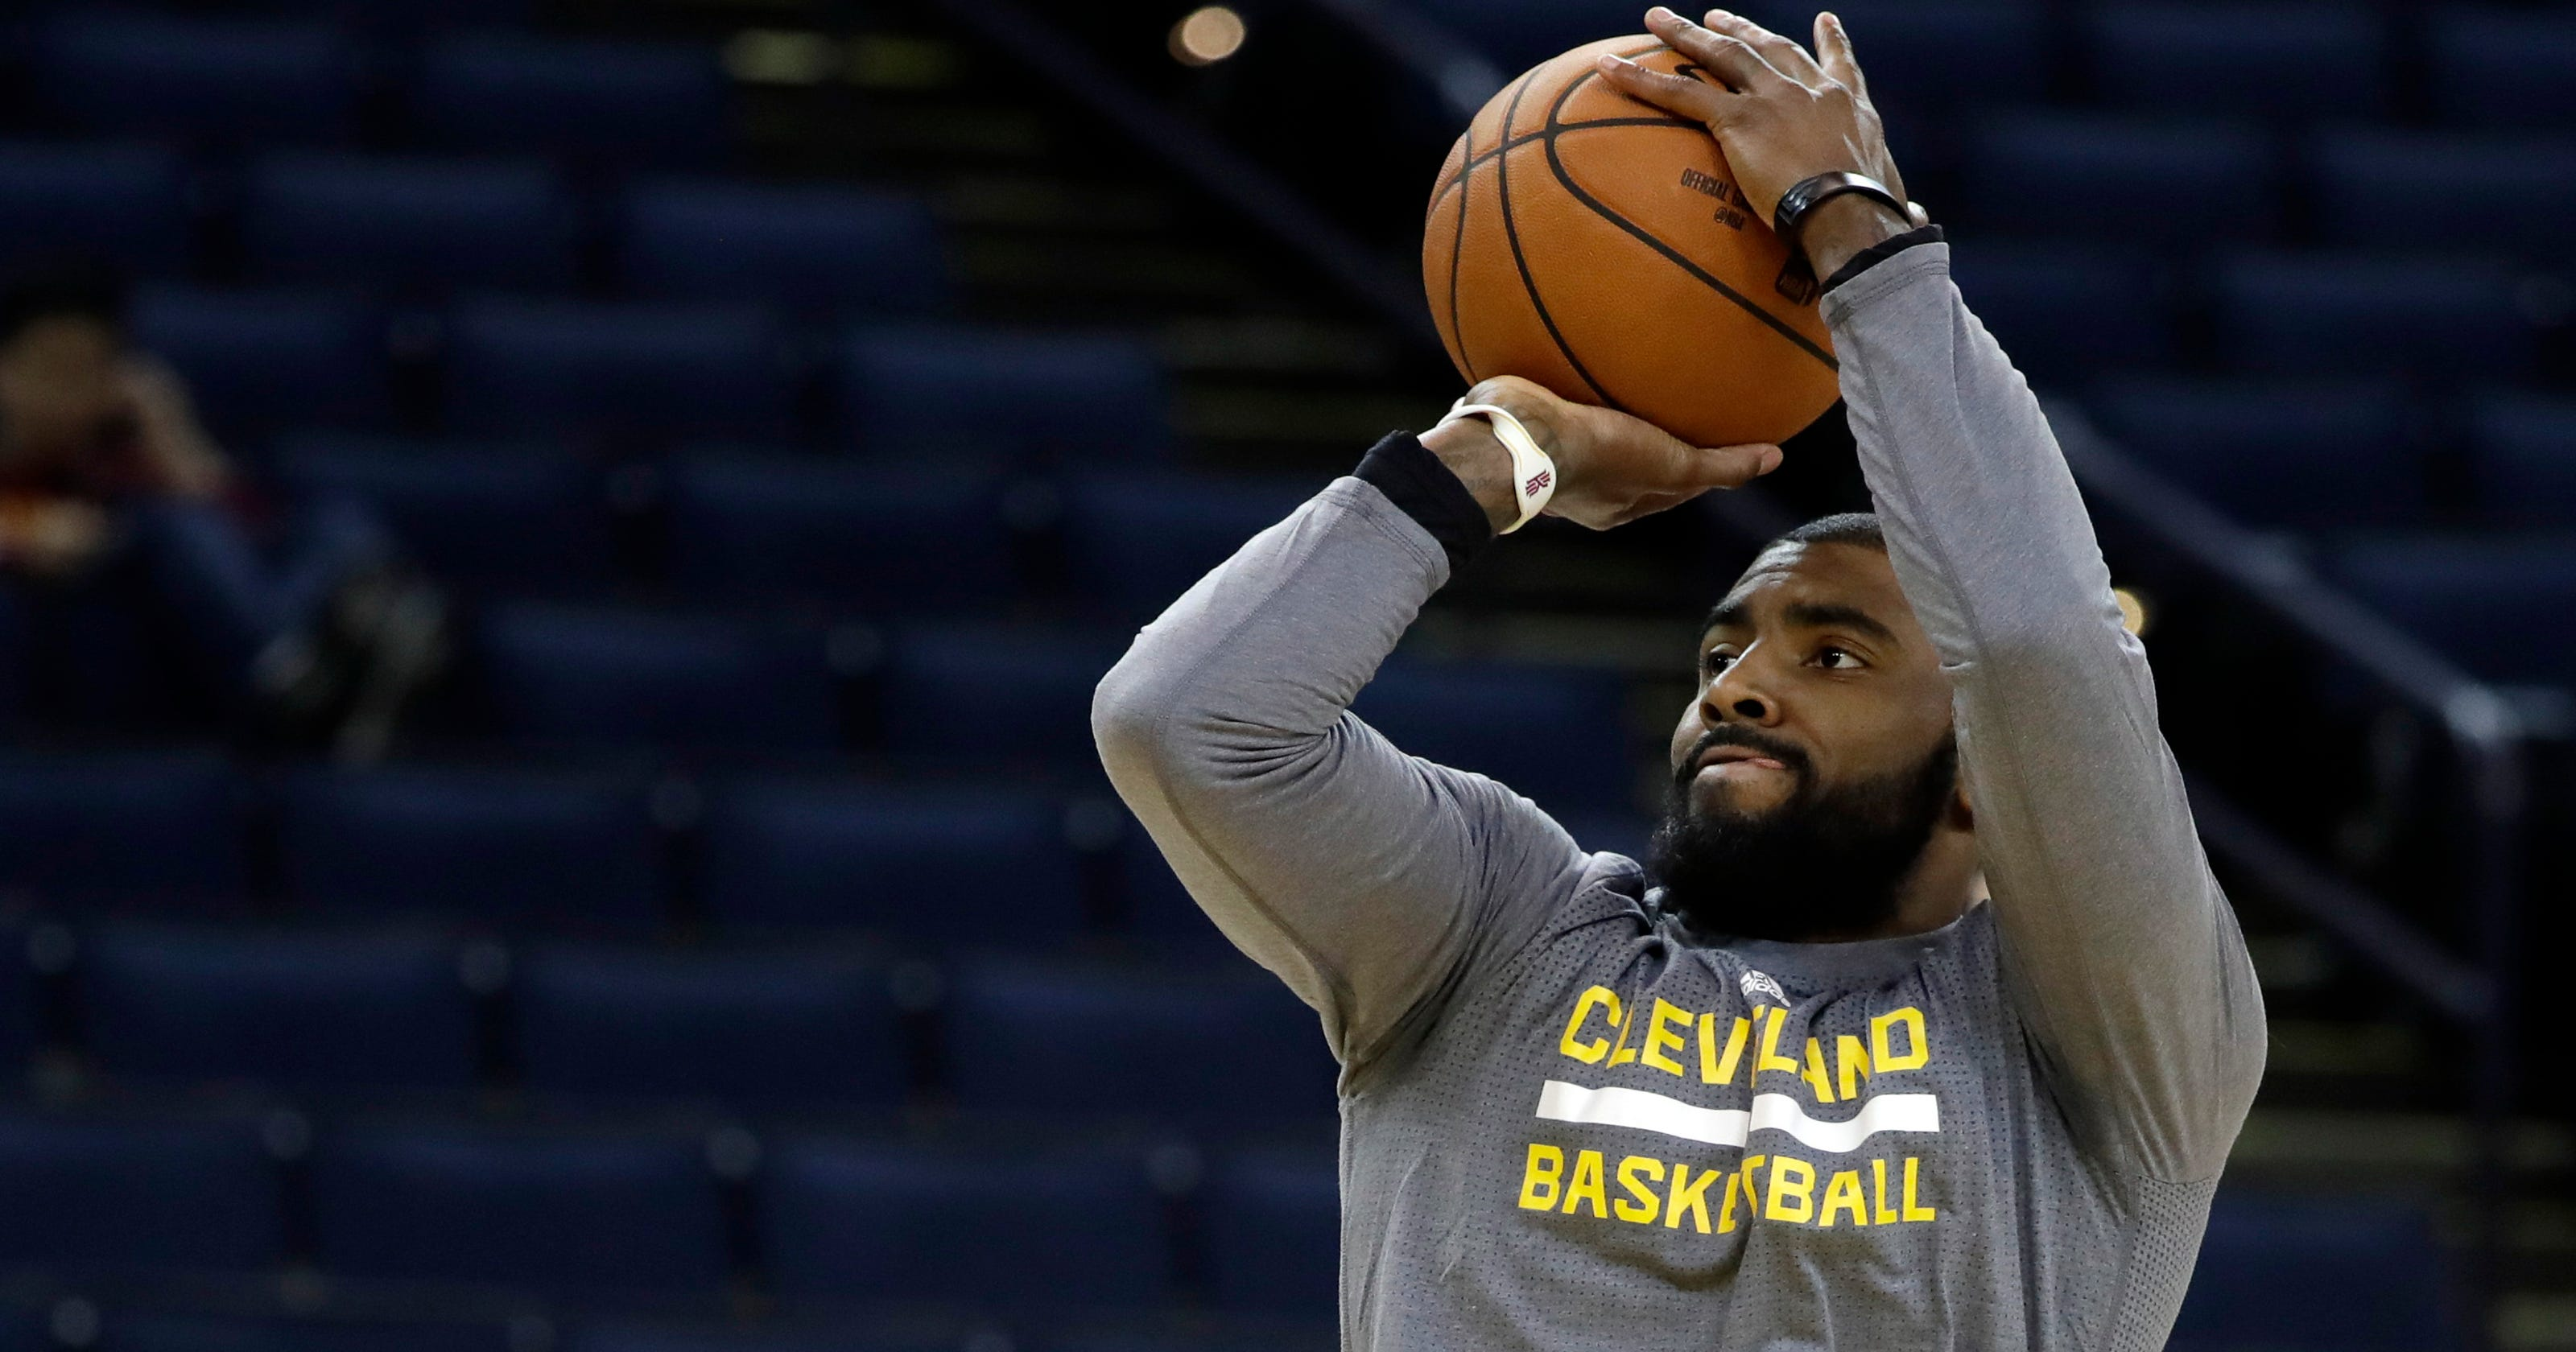 d4f95225b70 Gamer  Cavs  Irving to appear on cover of NBA 2K18 video